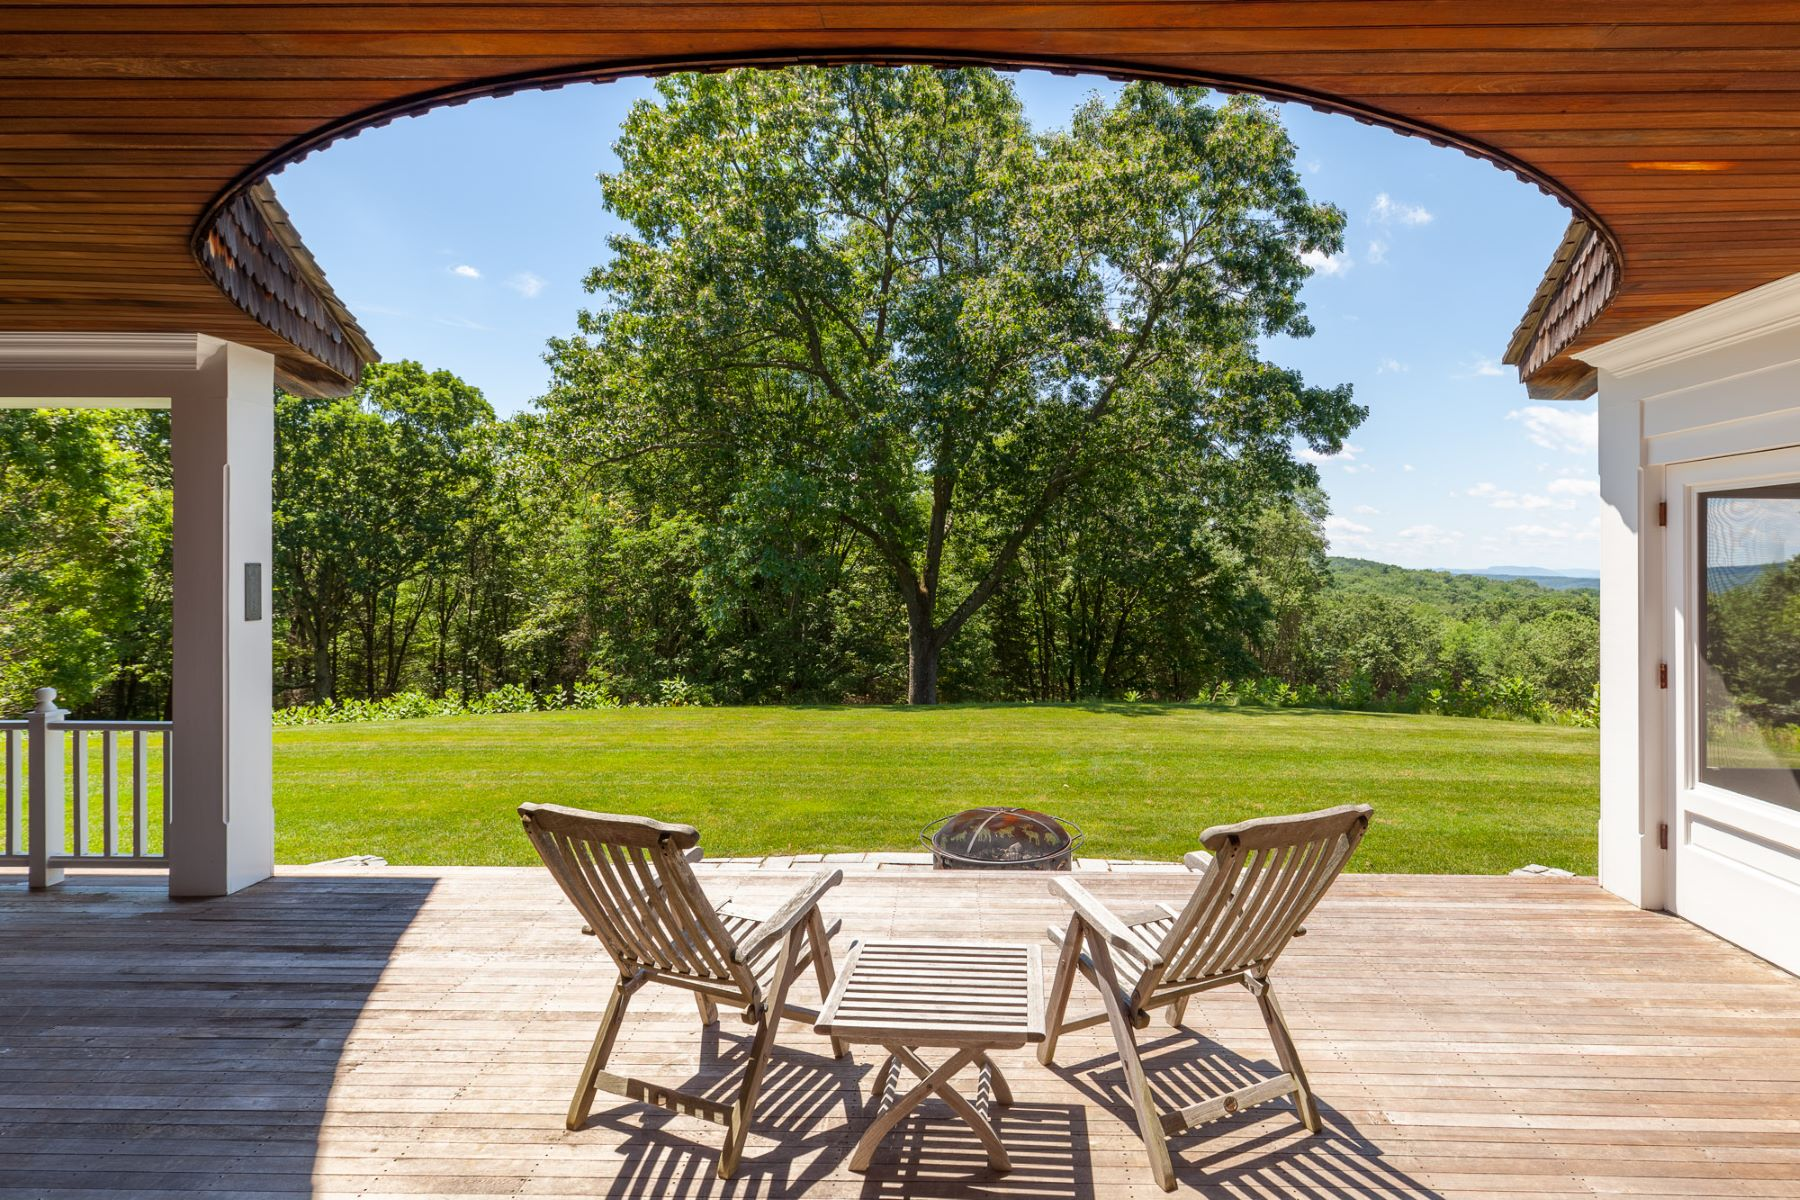 Additional photo for property listing at Woodland Retreat 146 Seeley Road Millbrook, New York 12545 United States